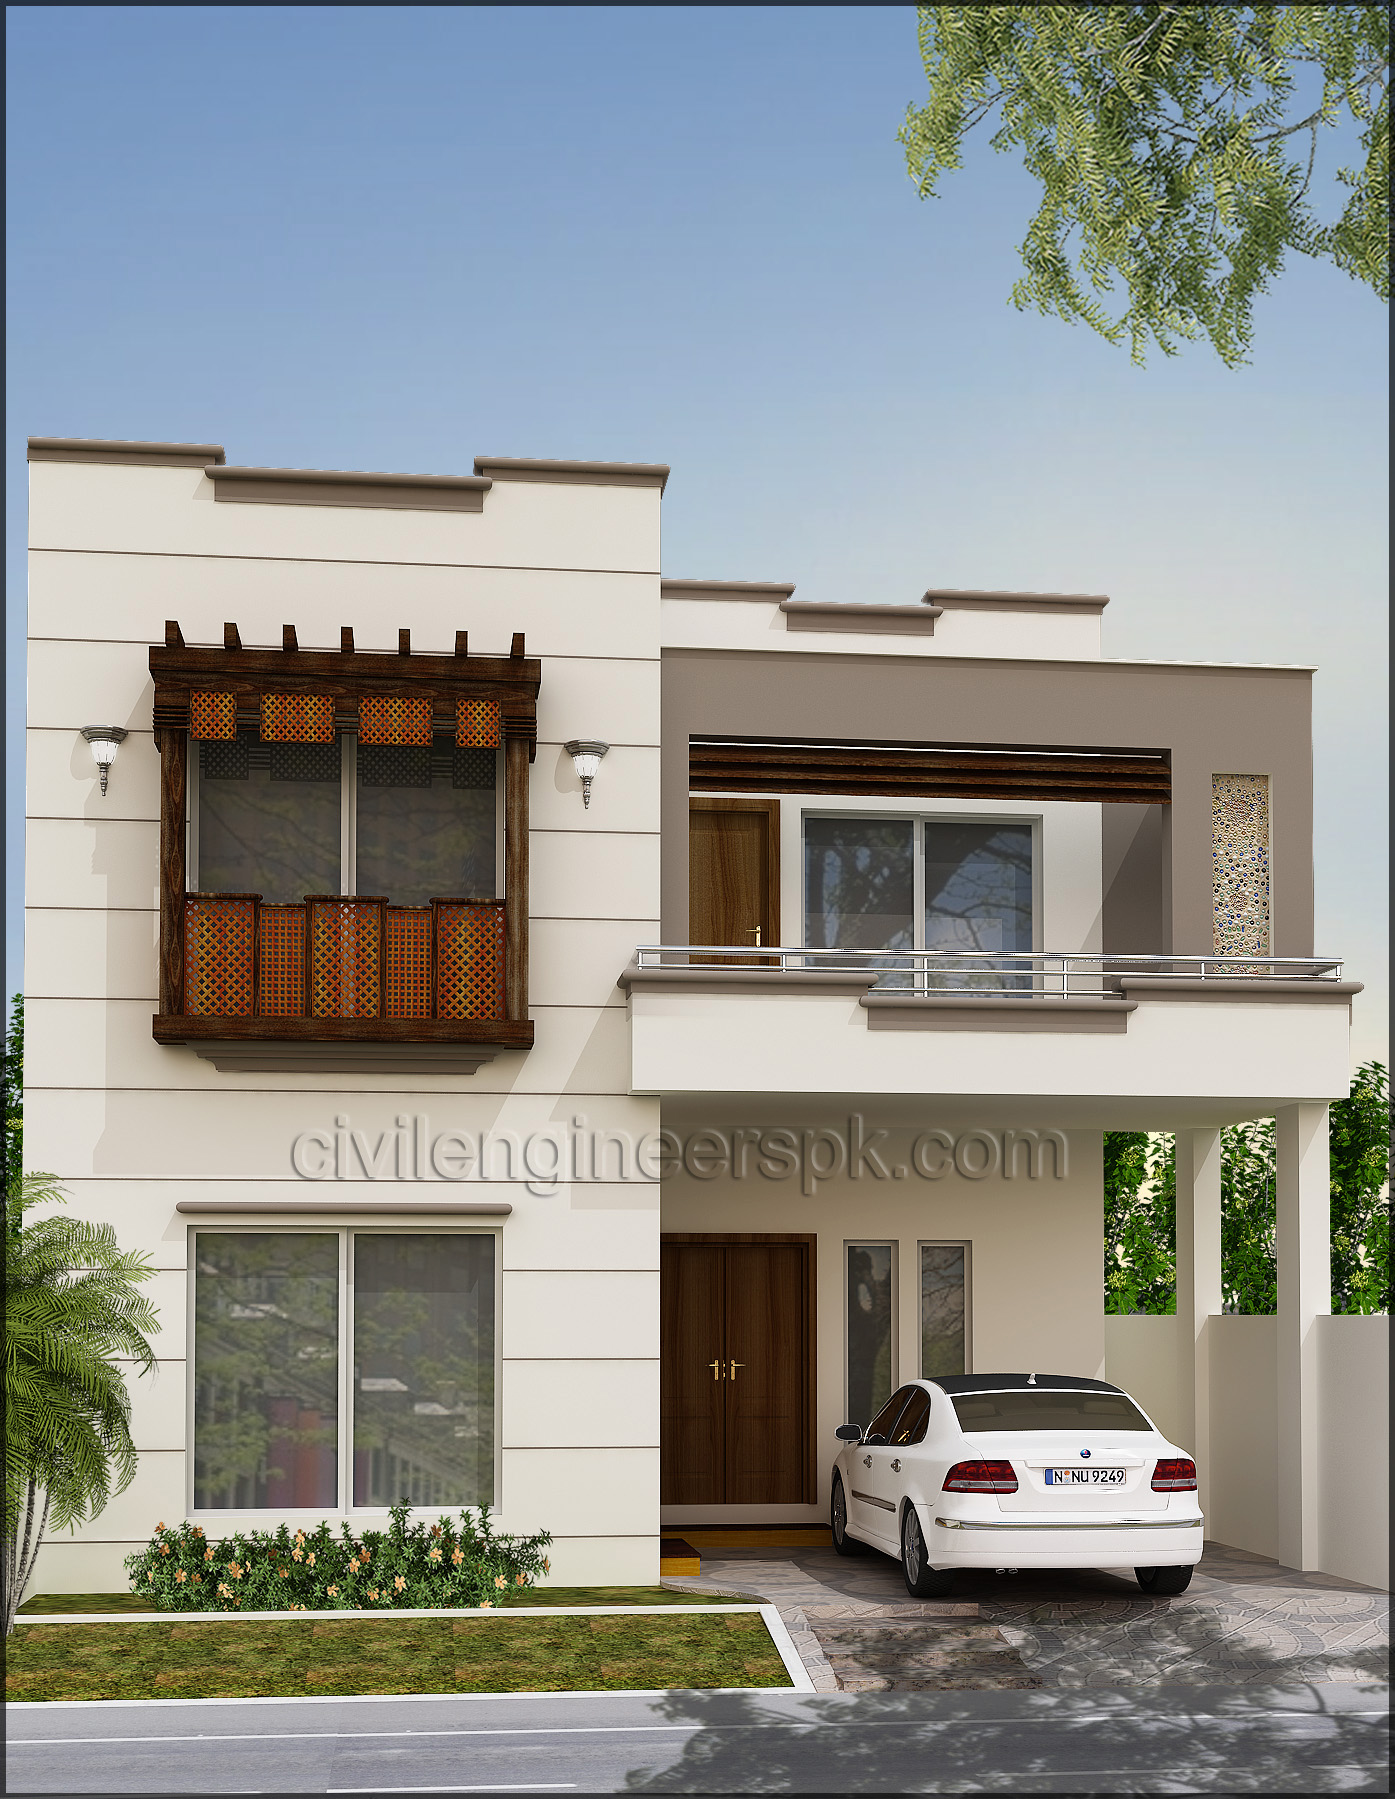 Front Elevation Of Houses In Lahore : House front views civil engineers pk